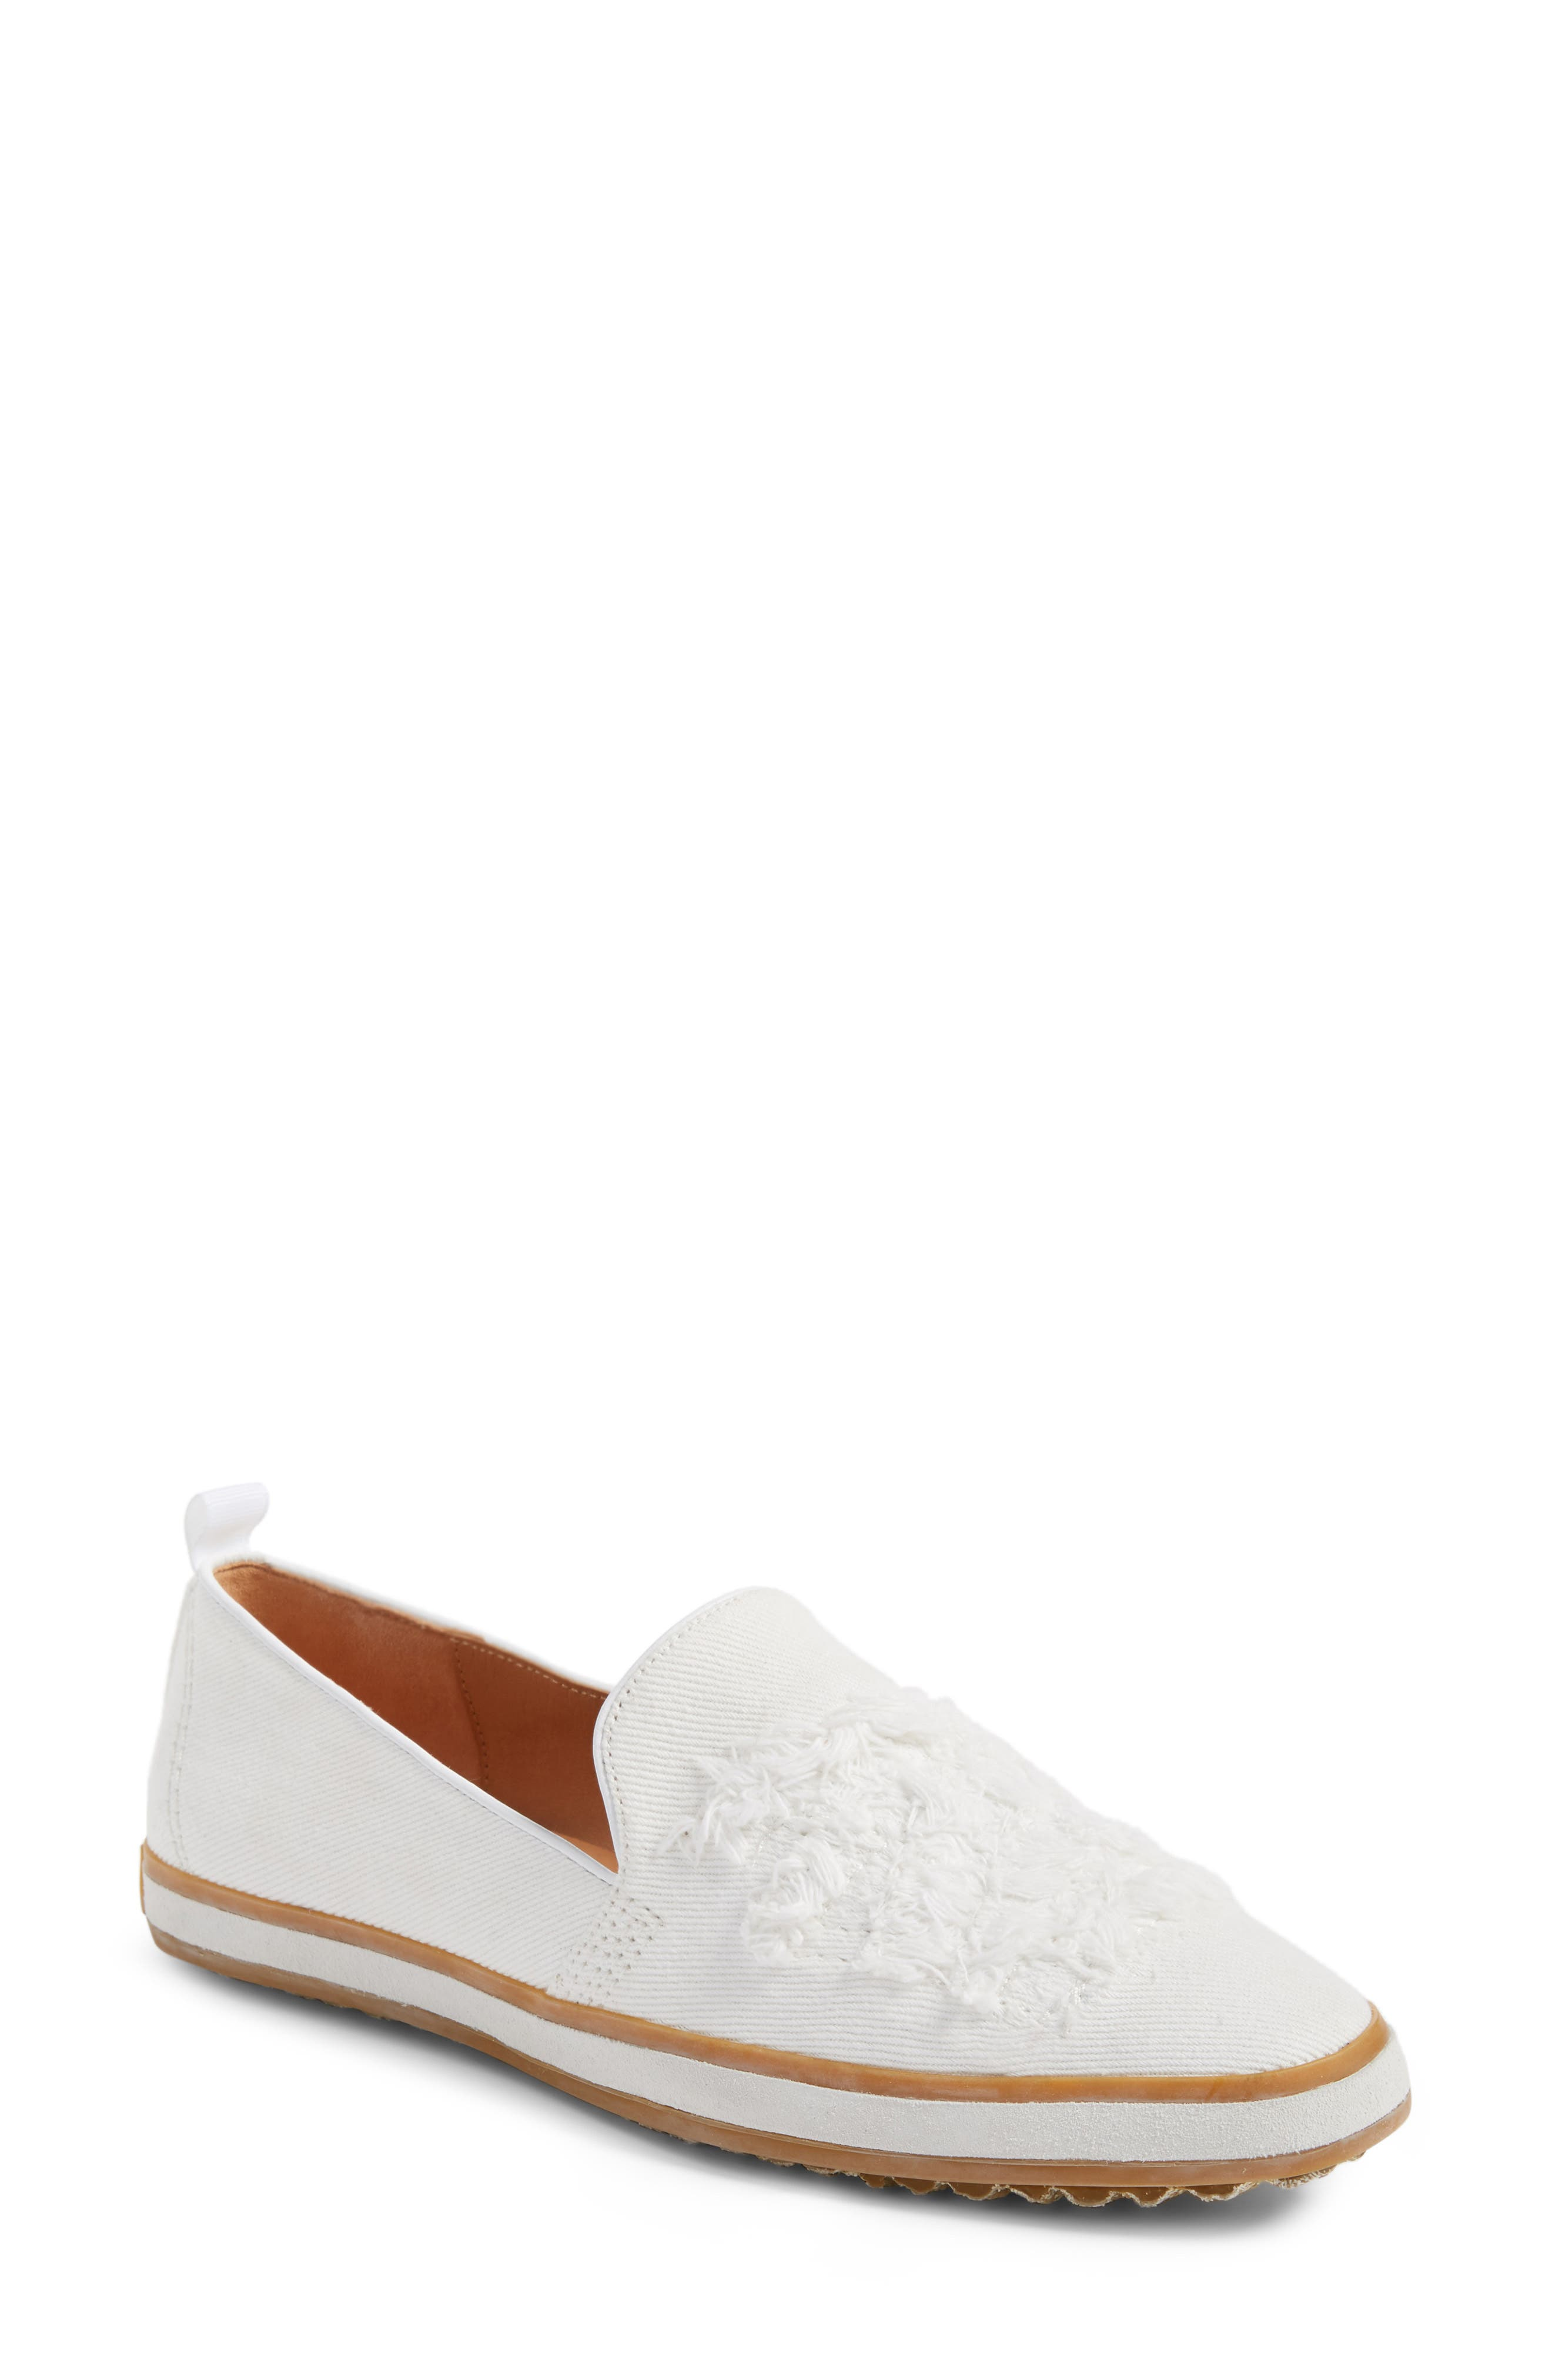 Sutton Loafer Flat,                         Main,                         color, White